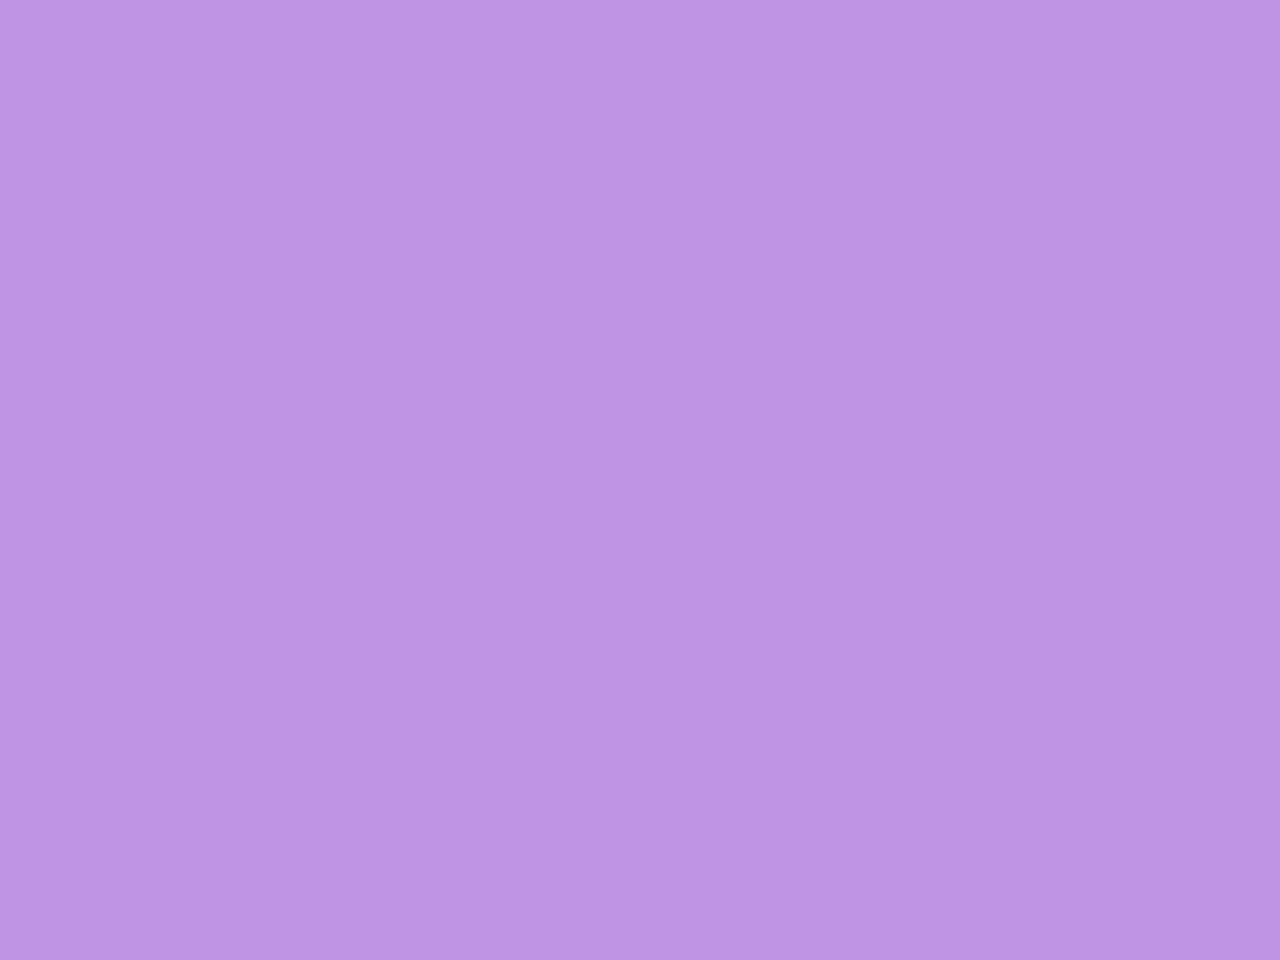 1280x960 Bright Lavender Solid Color Background